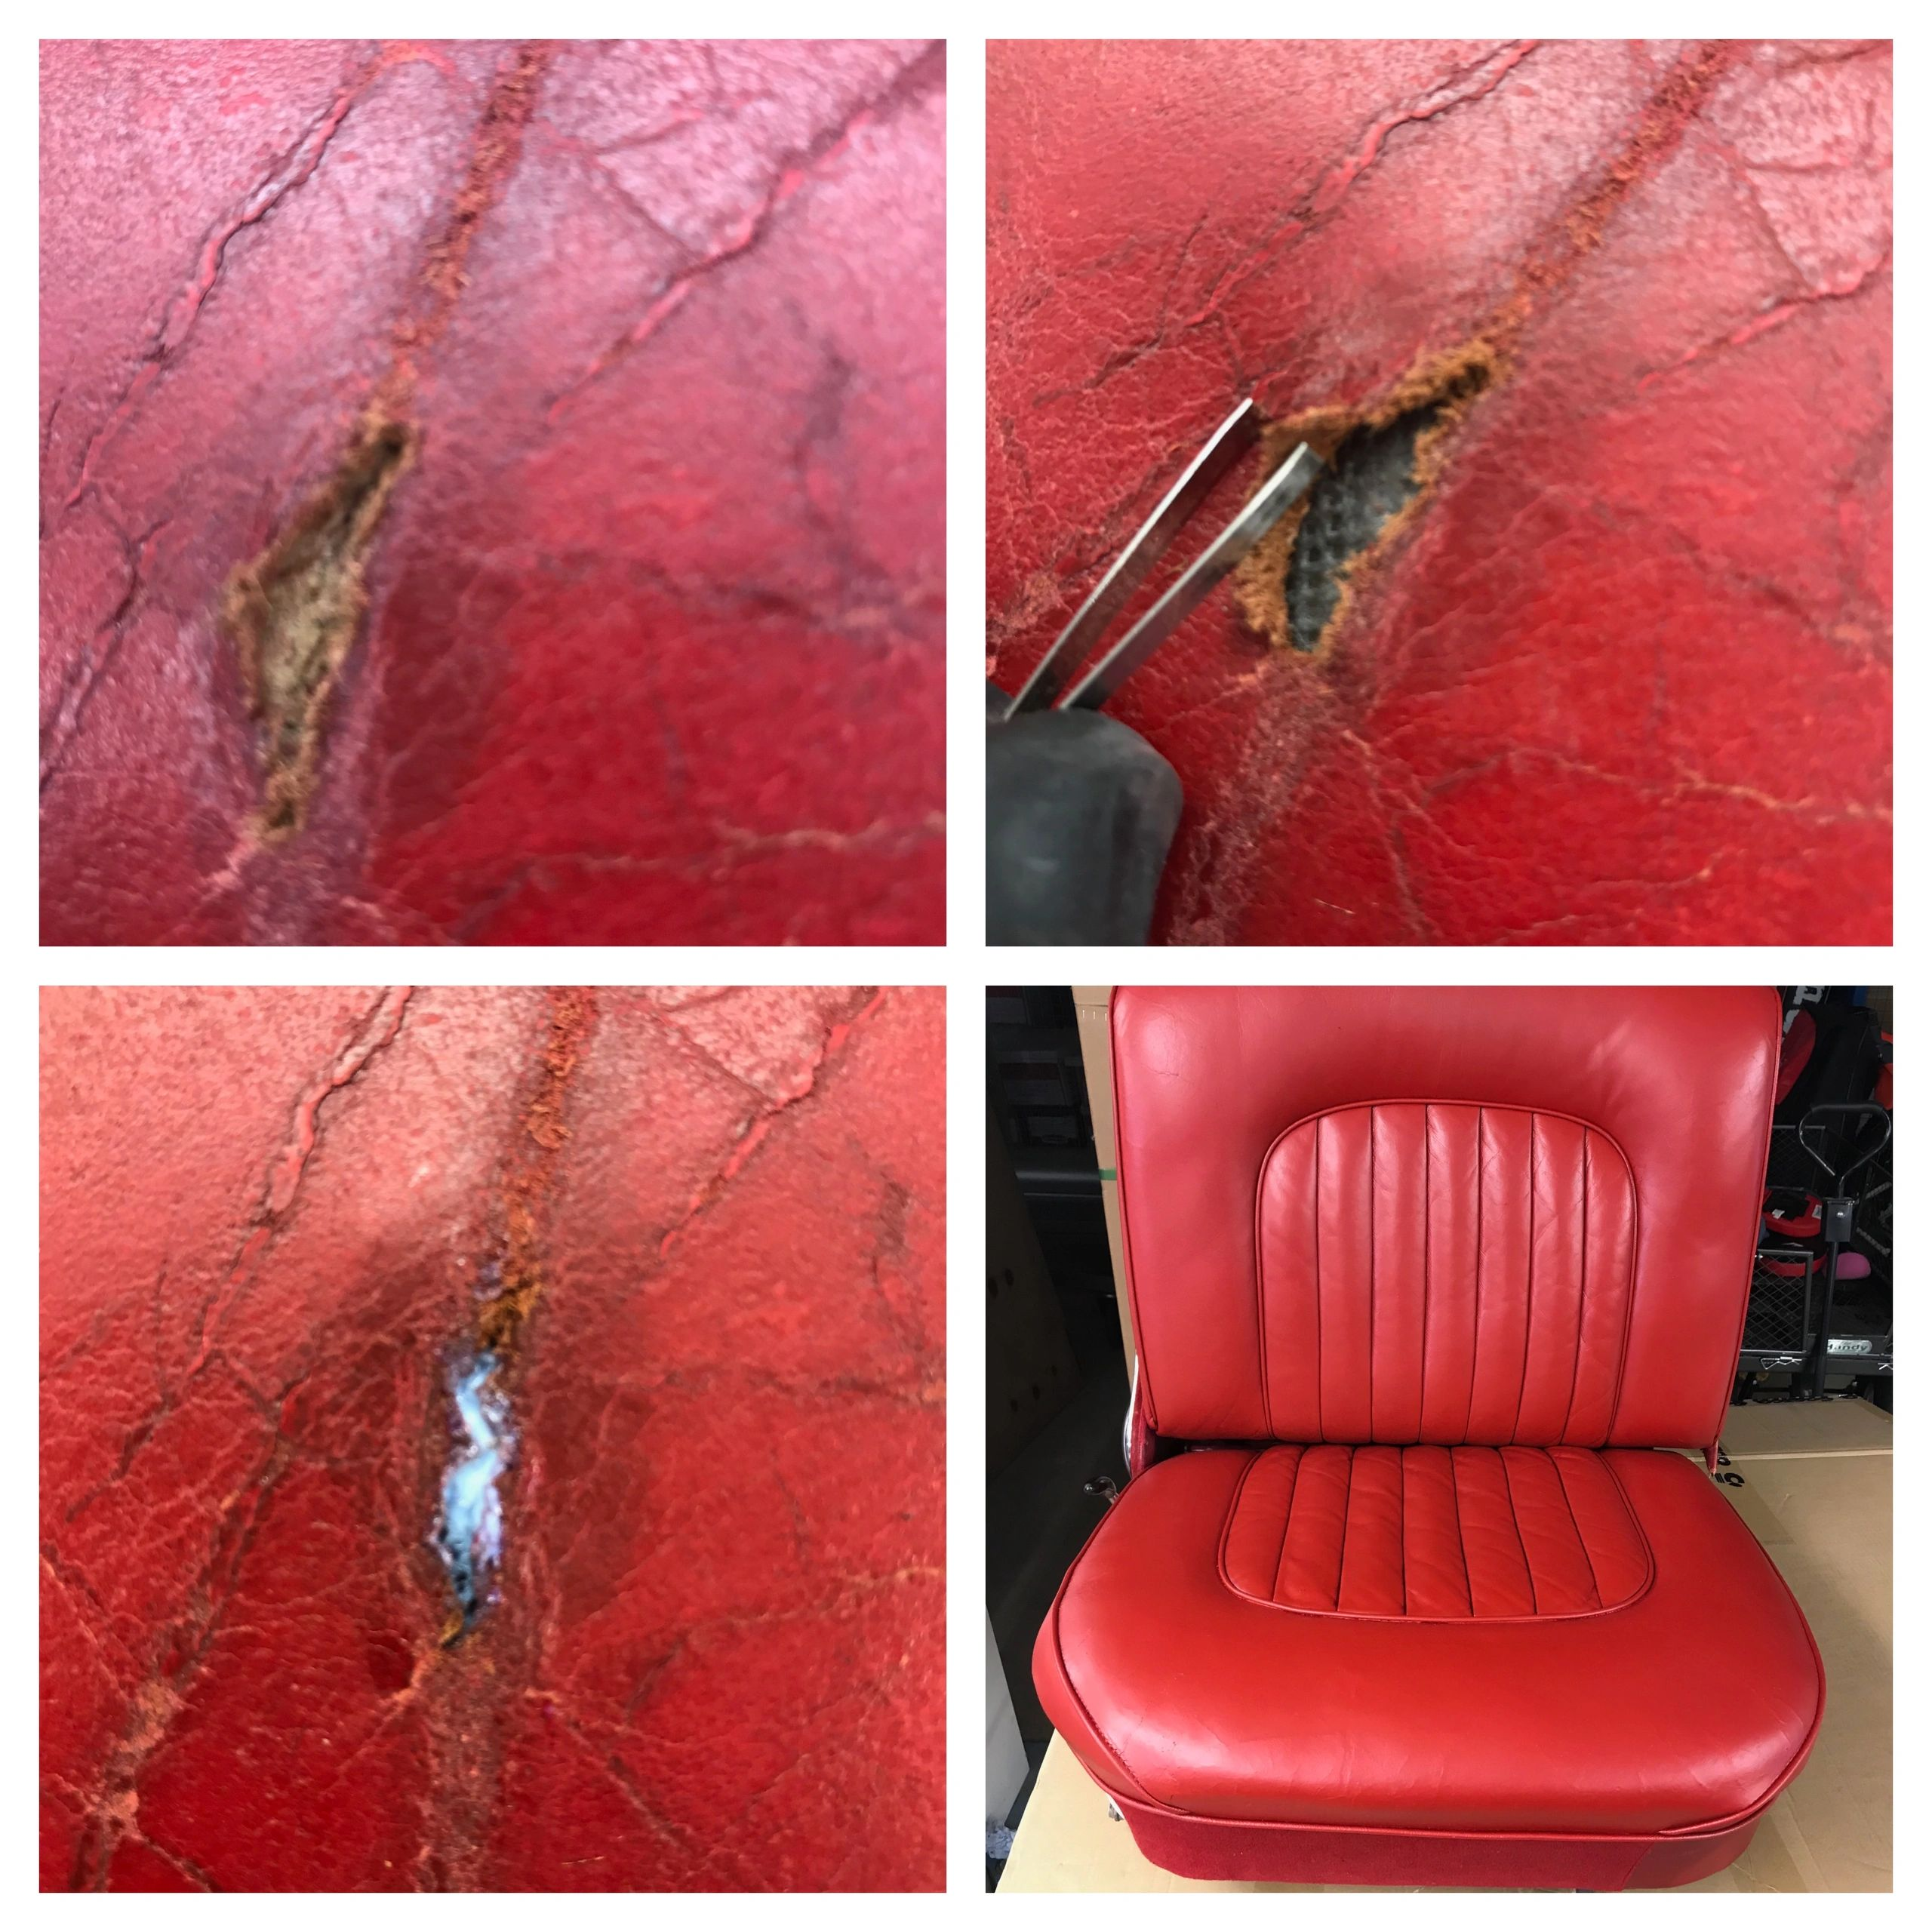 Leather repair on jaguar leather seat using Colourlock by Healey's Mobile Valeting